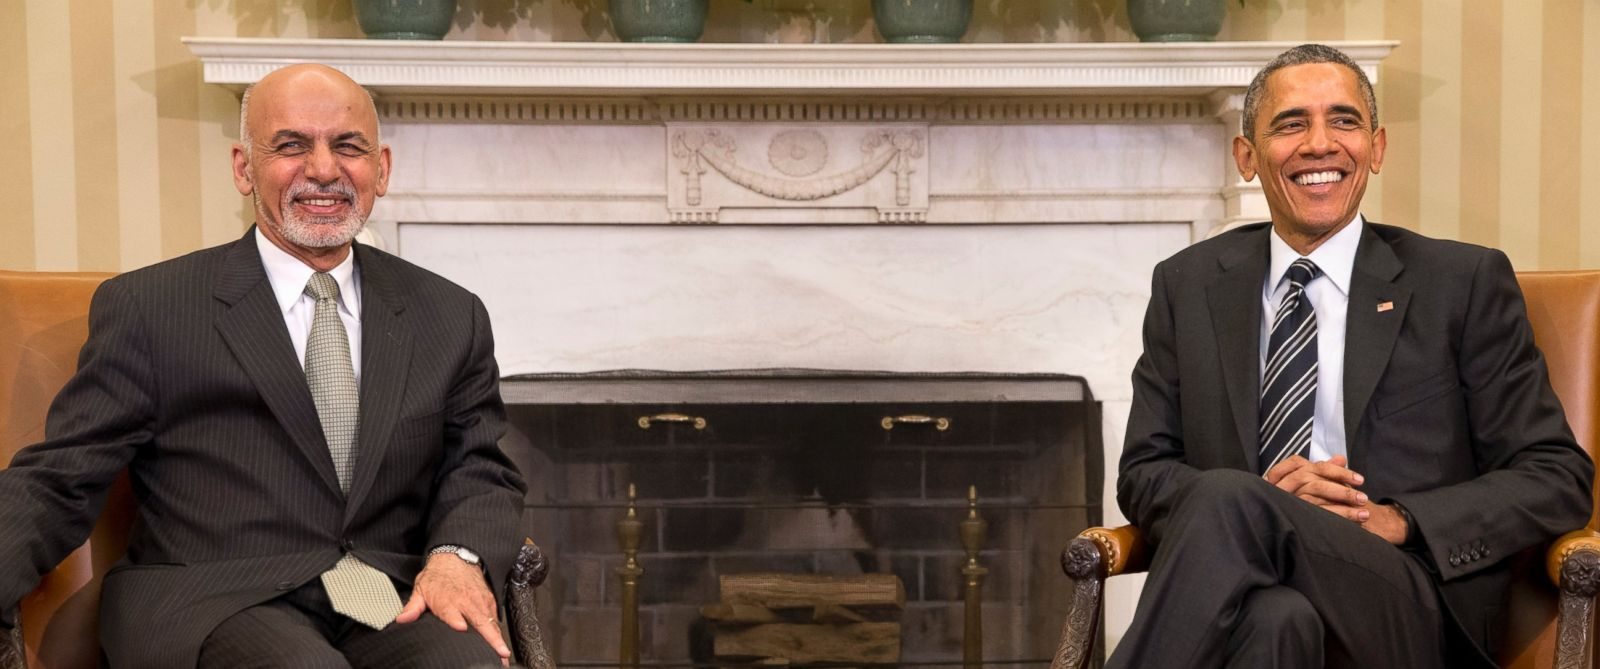 PHOTO: President Barack Obama meets with Afghanistans President Ashraf Ghani in the Oval Office of the White House in Washington, Tuesday, March 24, 2015.